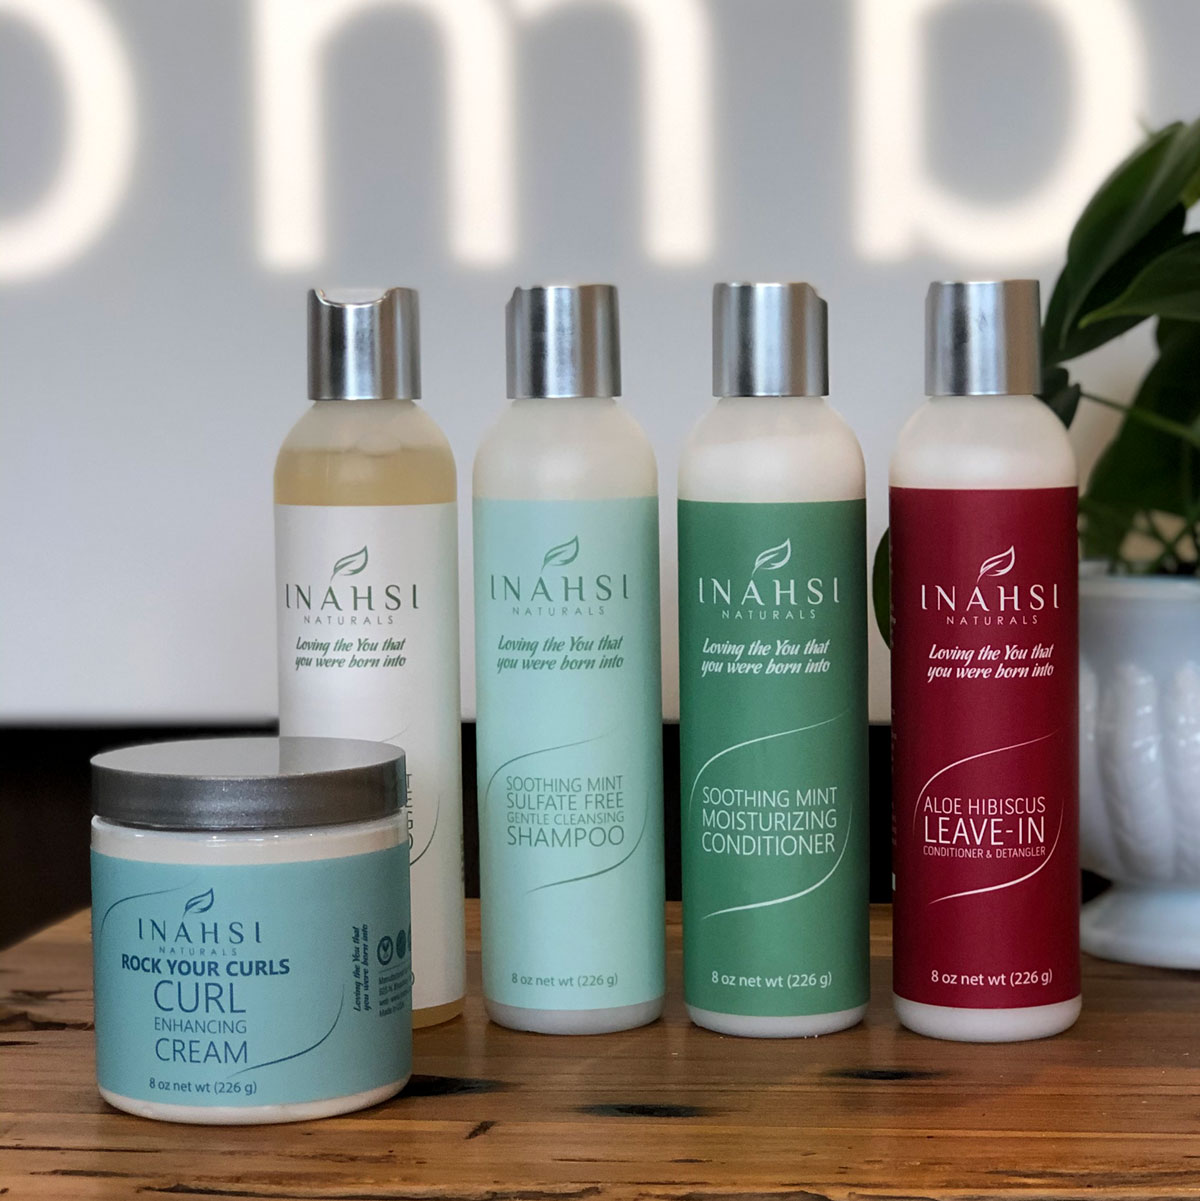 inahsi naturals haircare products are available at ombu salon + spa in edmonds, wa